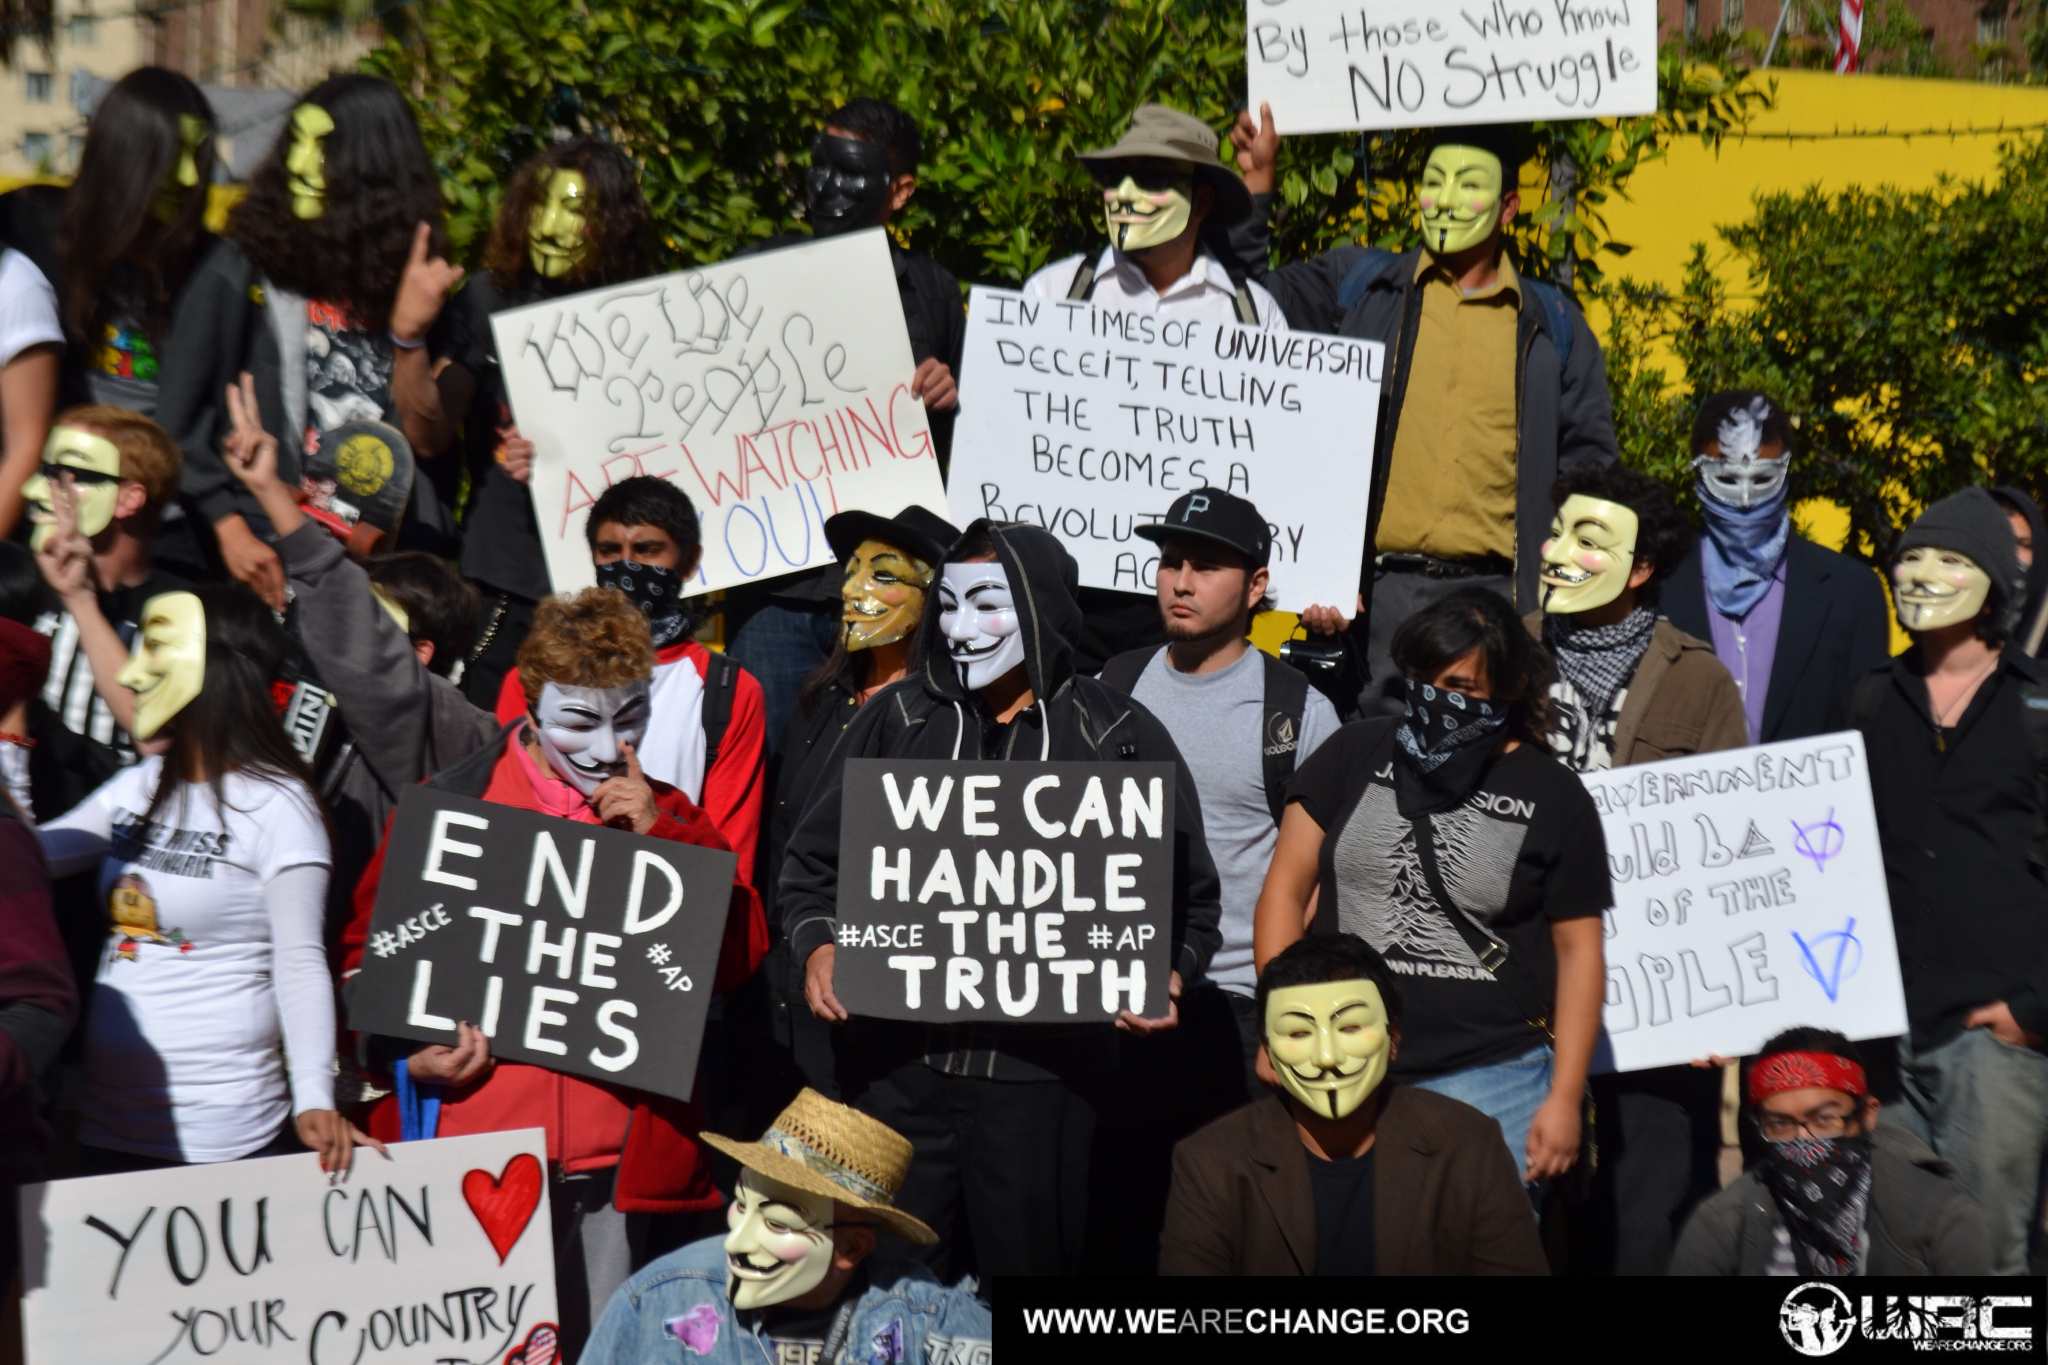 Snapshots of the Million Mask March in Los Angeles, CA